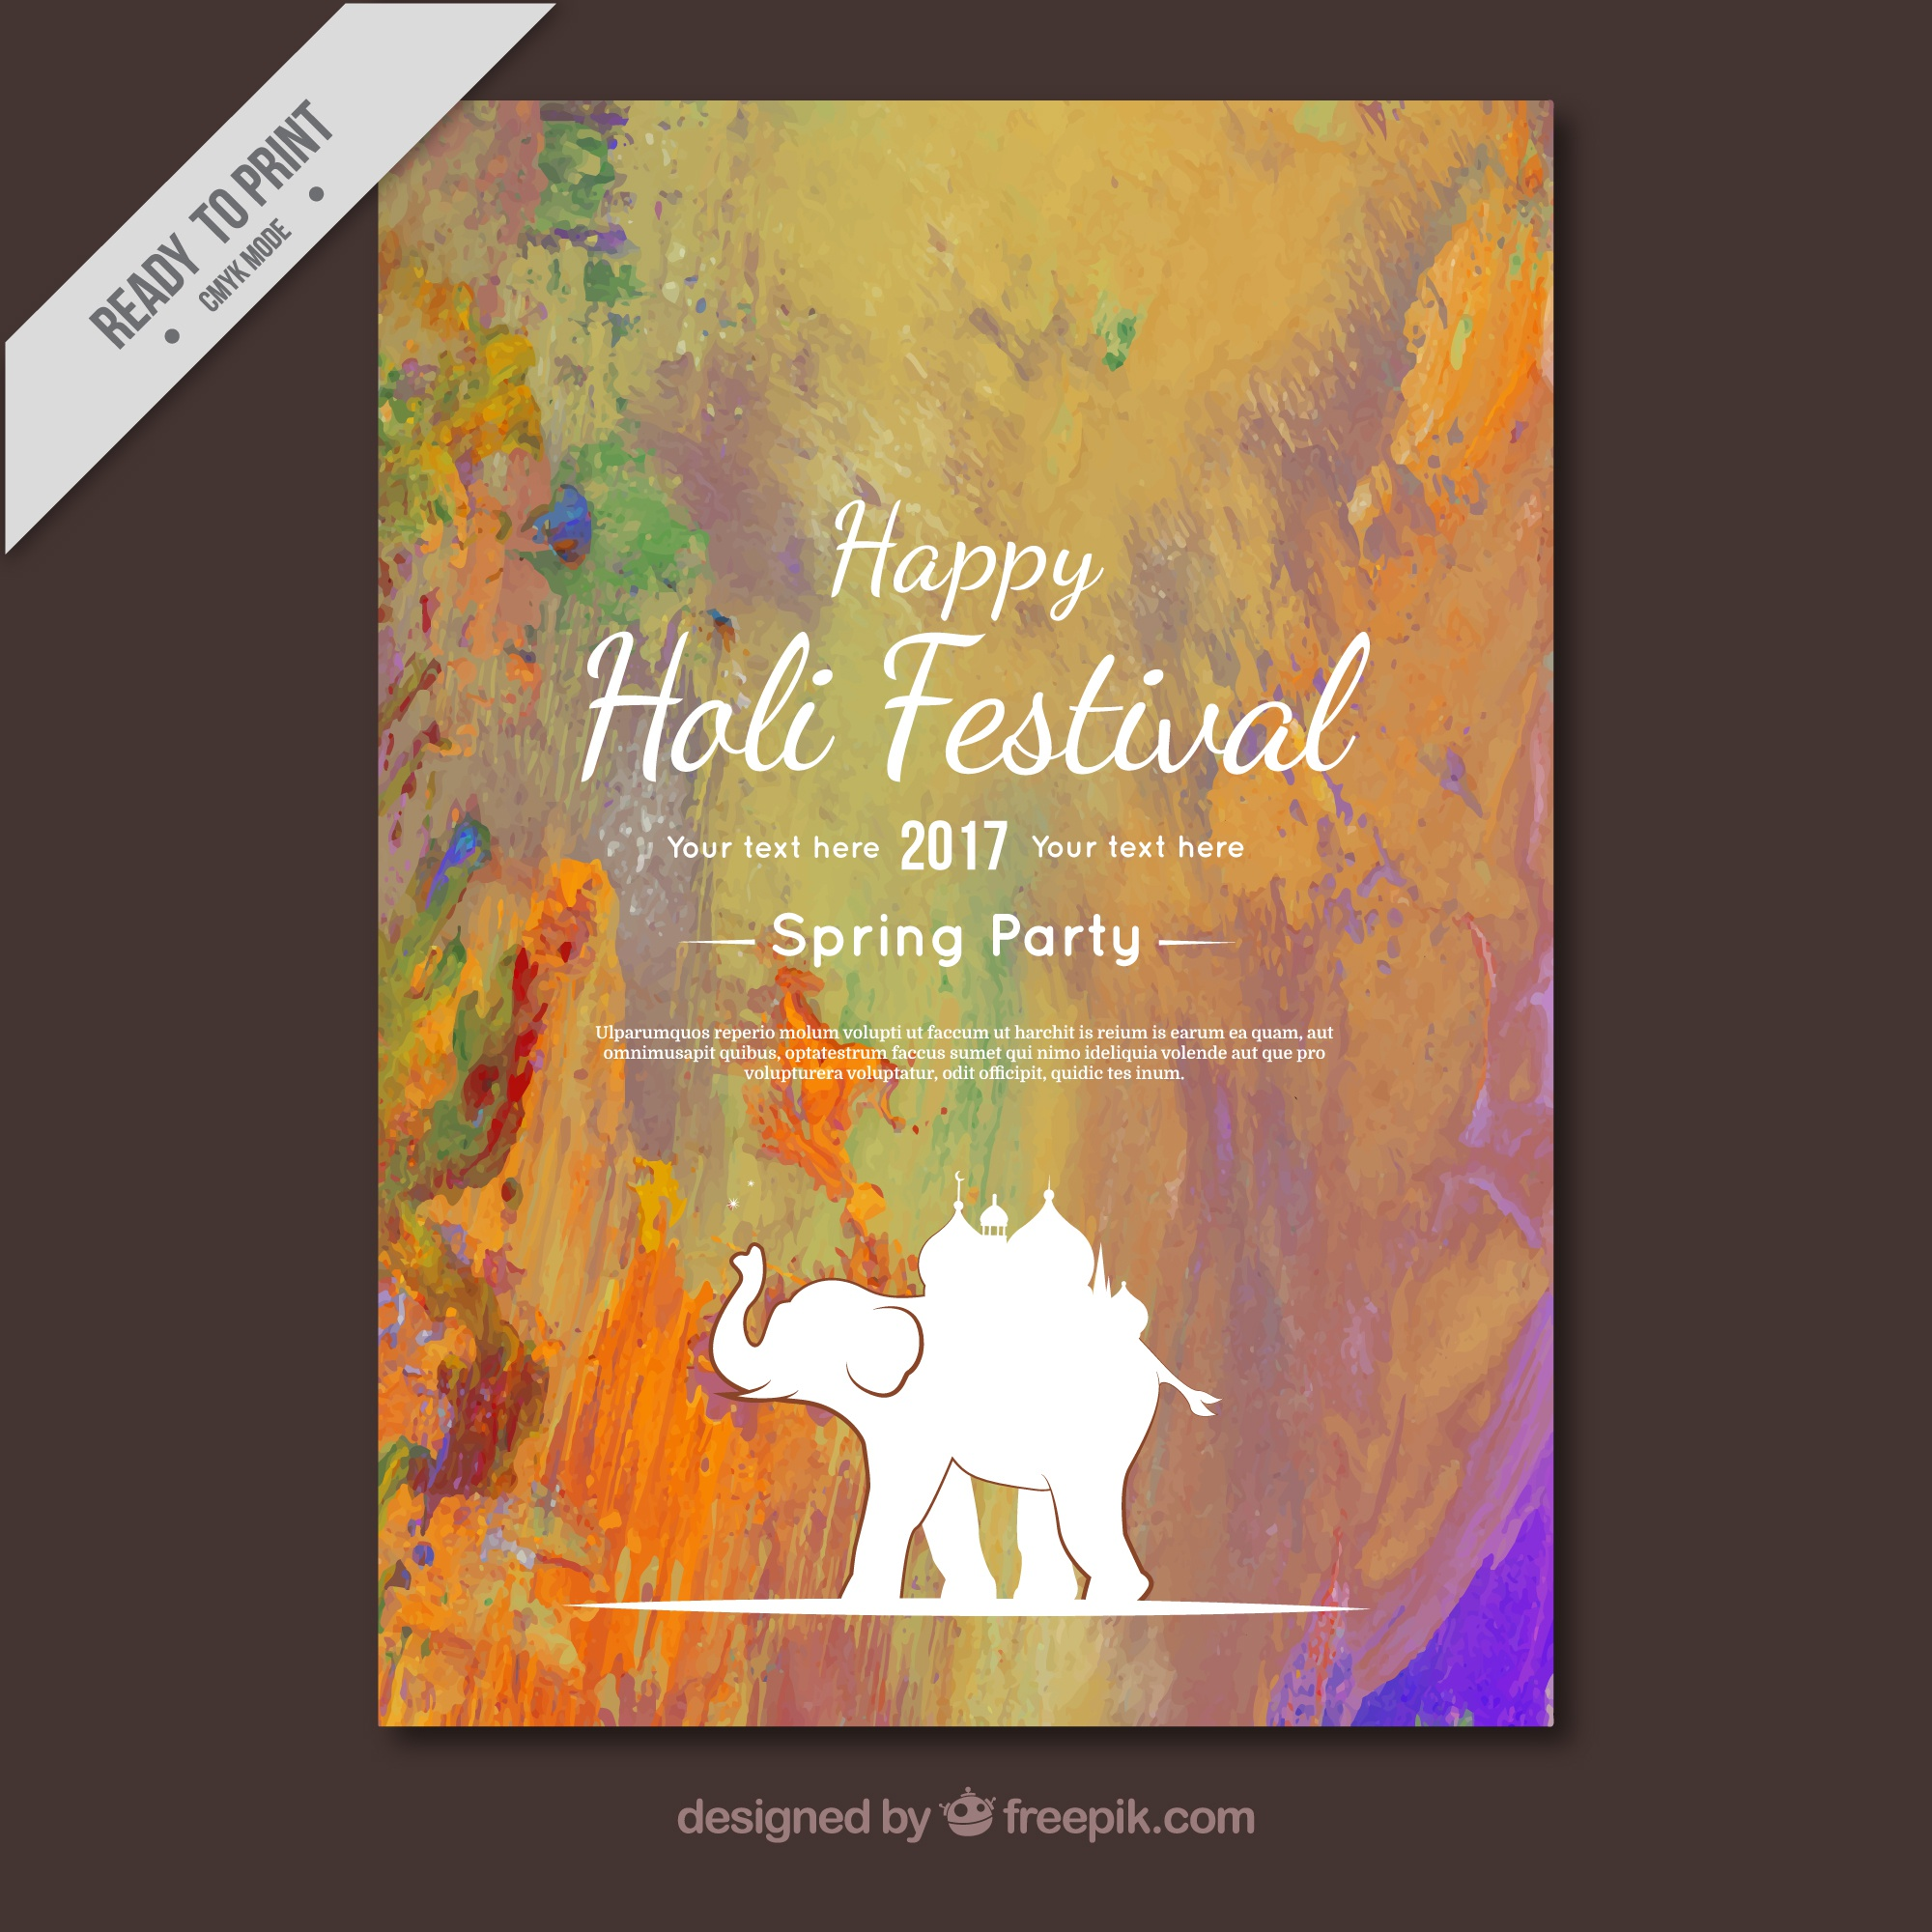 Abstract holi party brochure with elephant silhouette